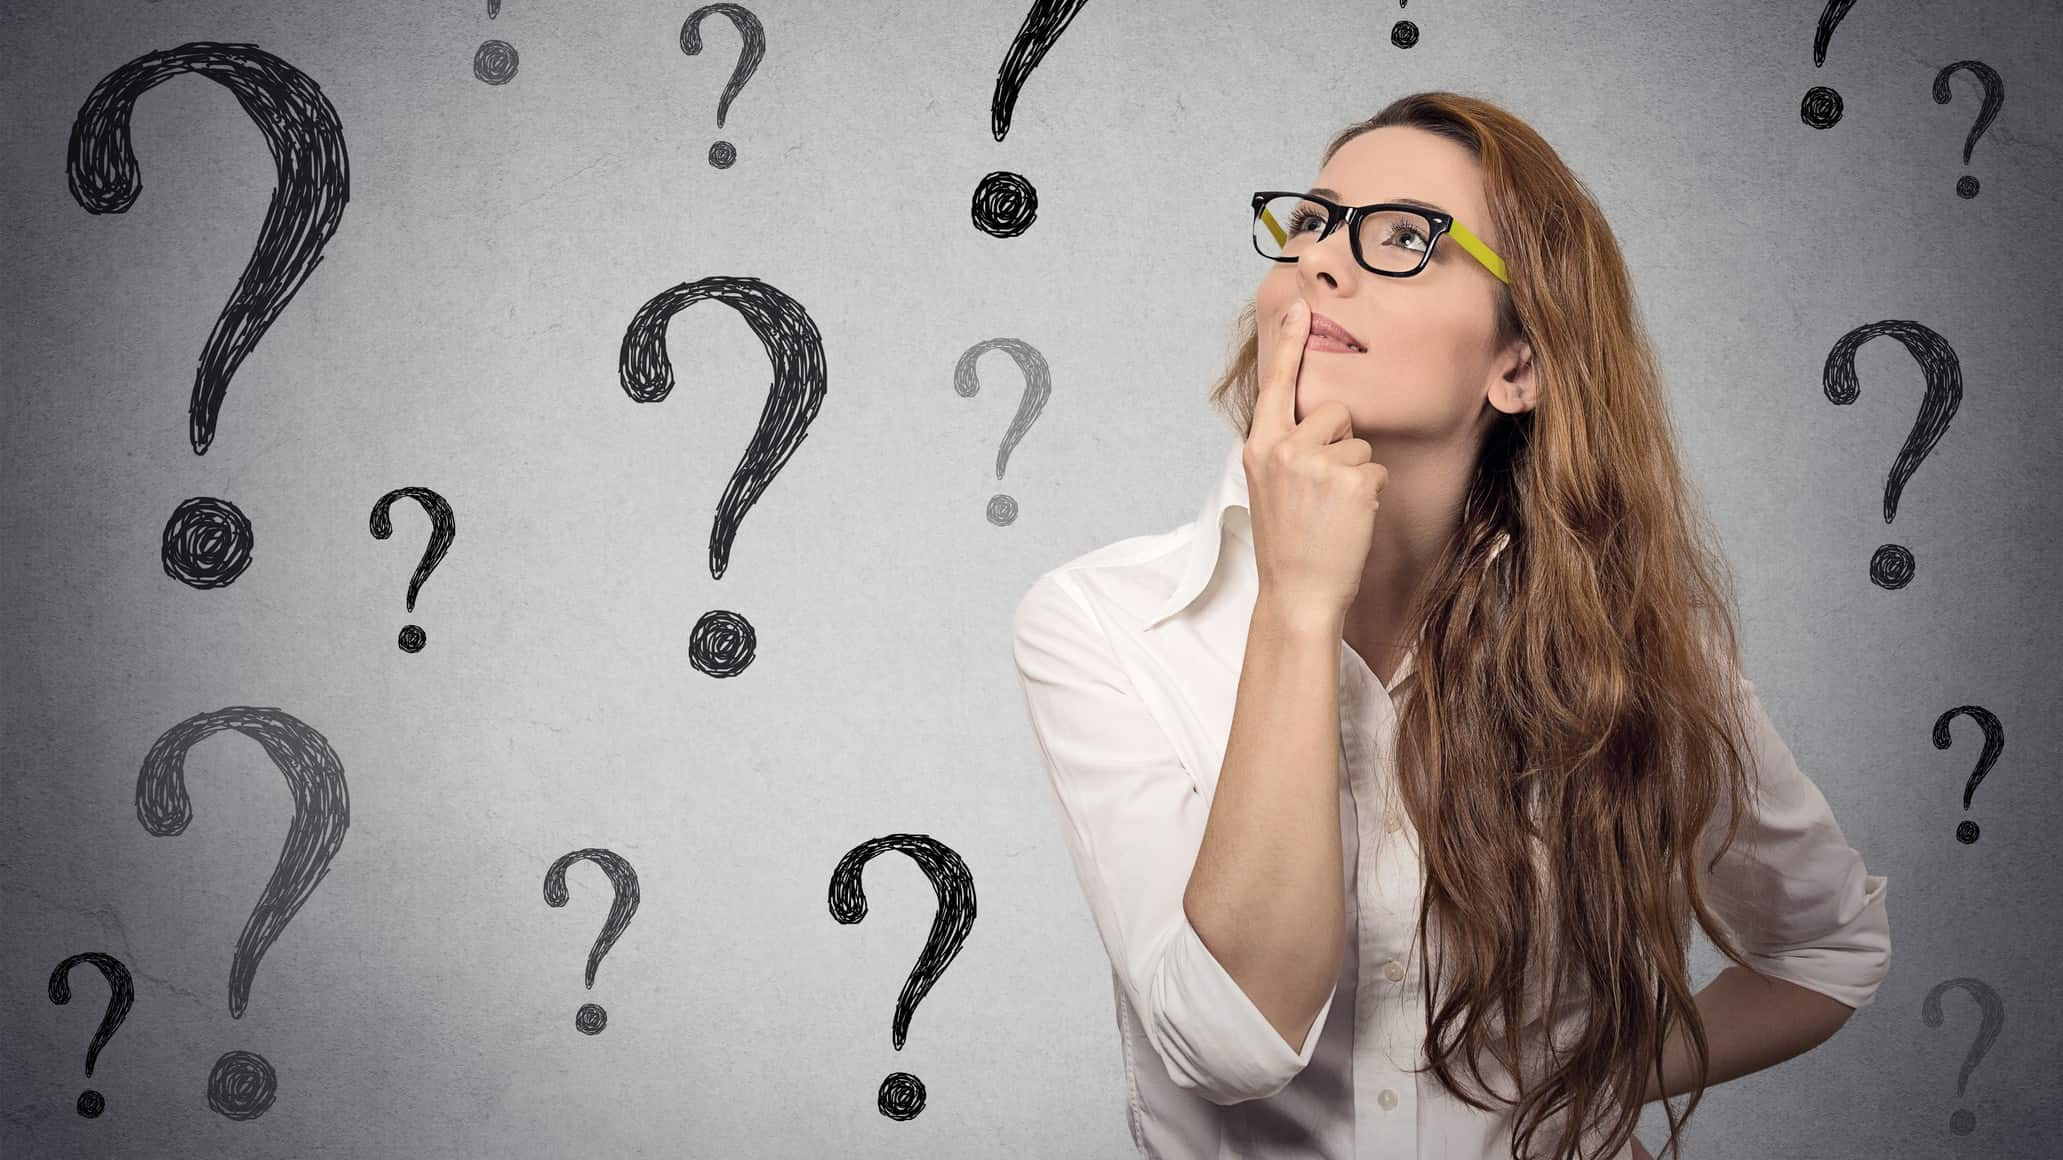 wondering about asx shares represented by woman surrounded by question marks